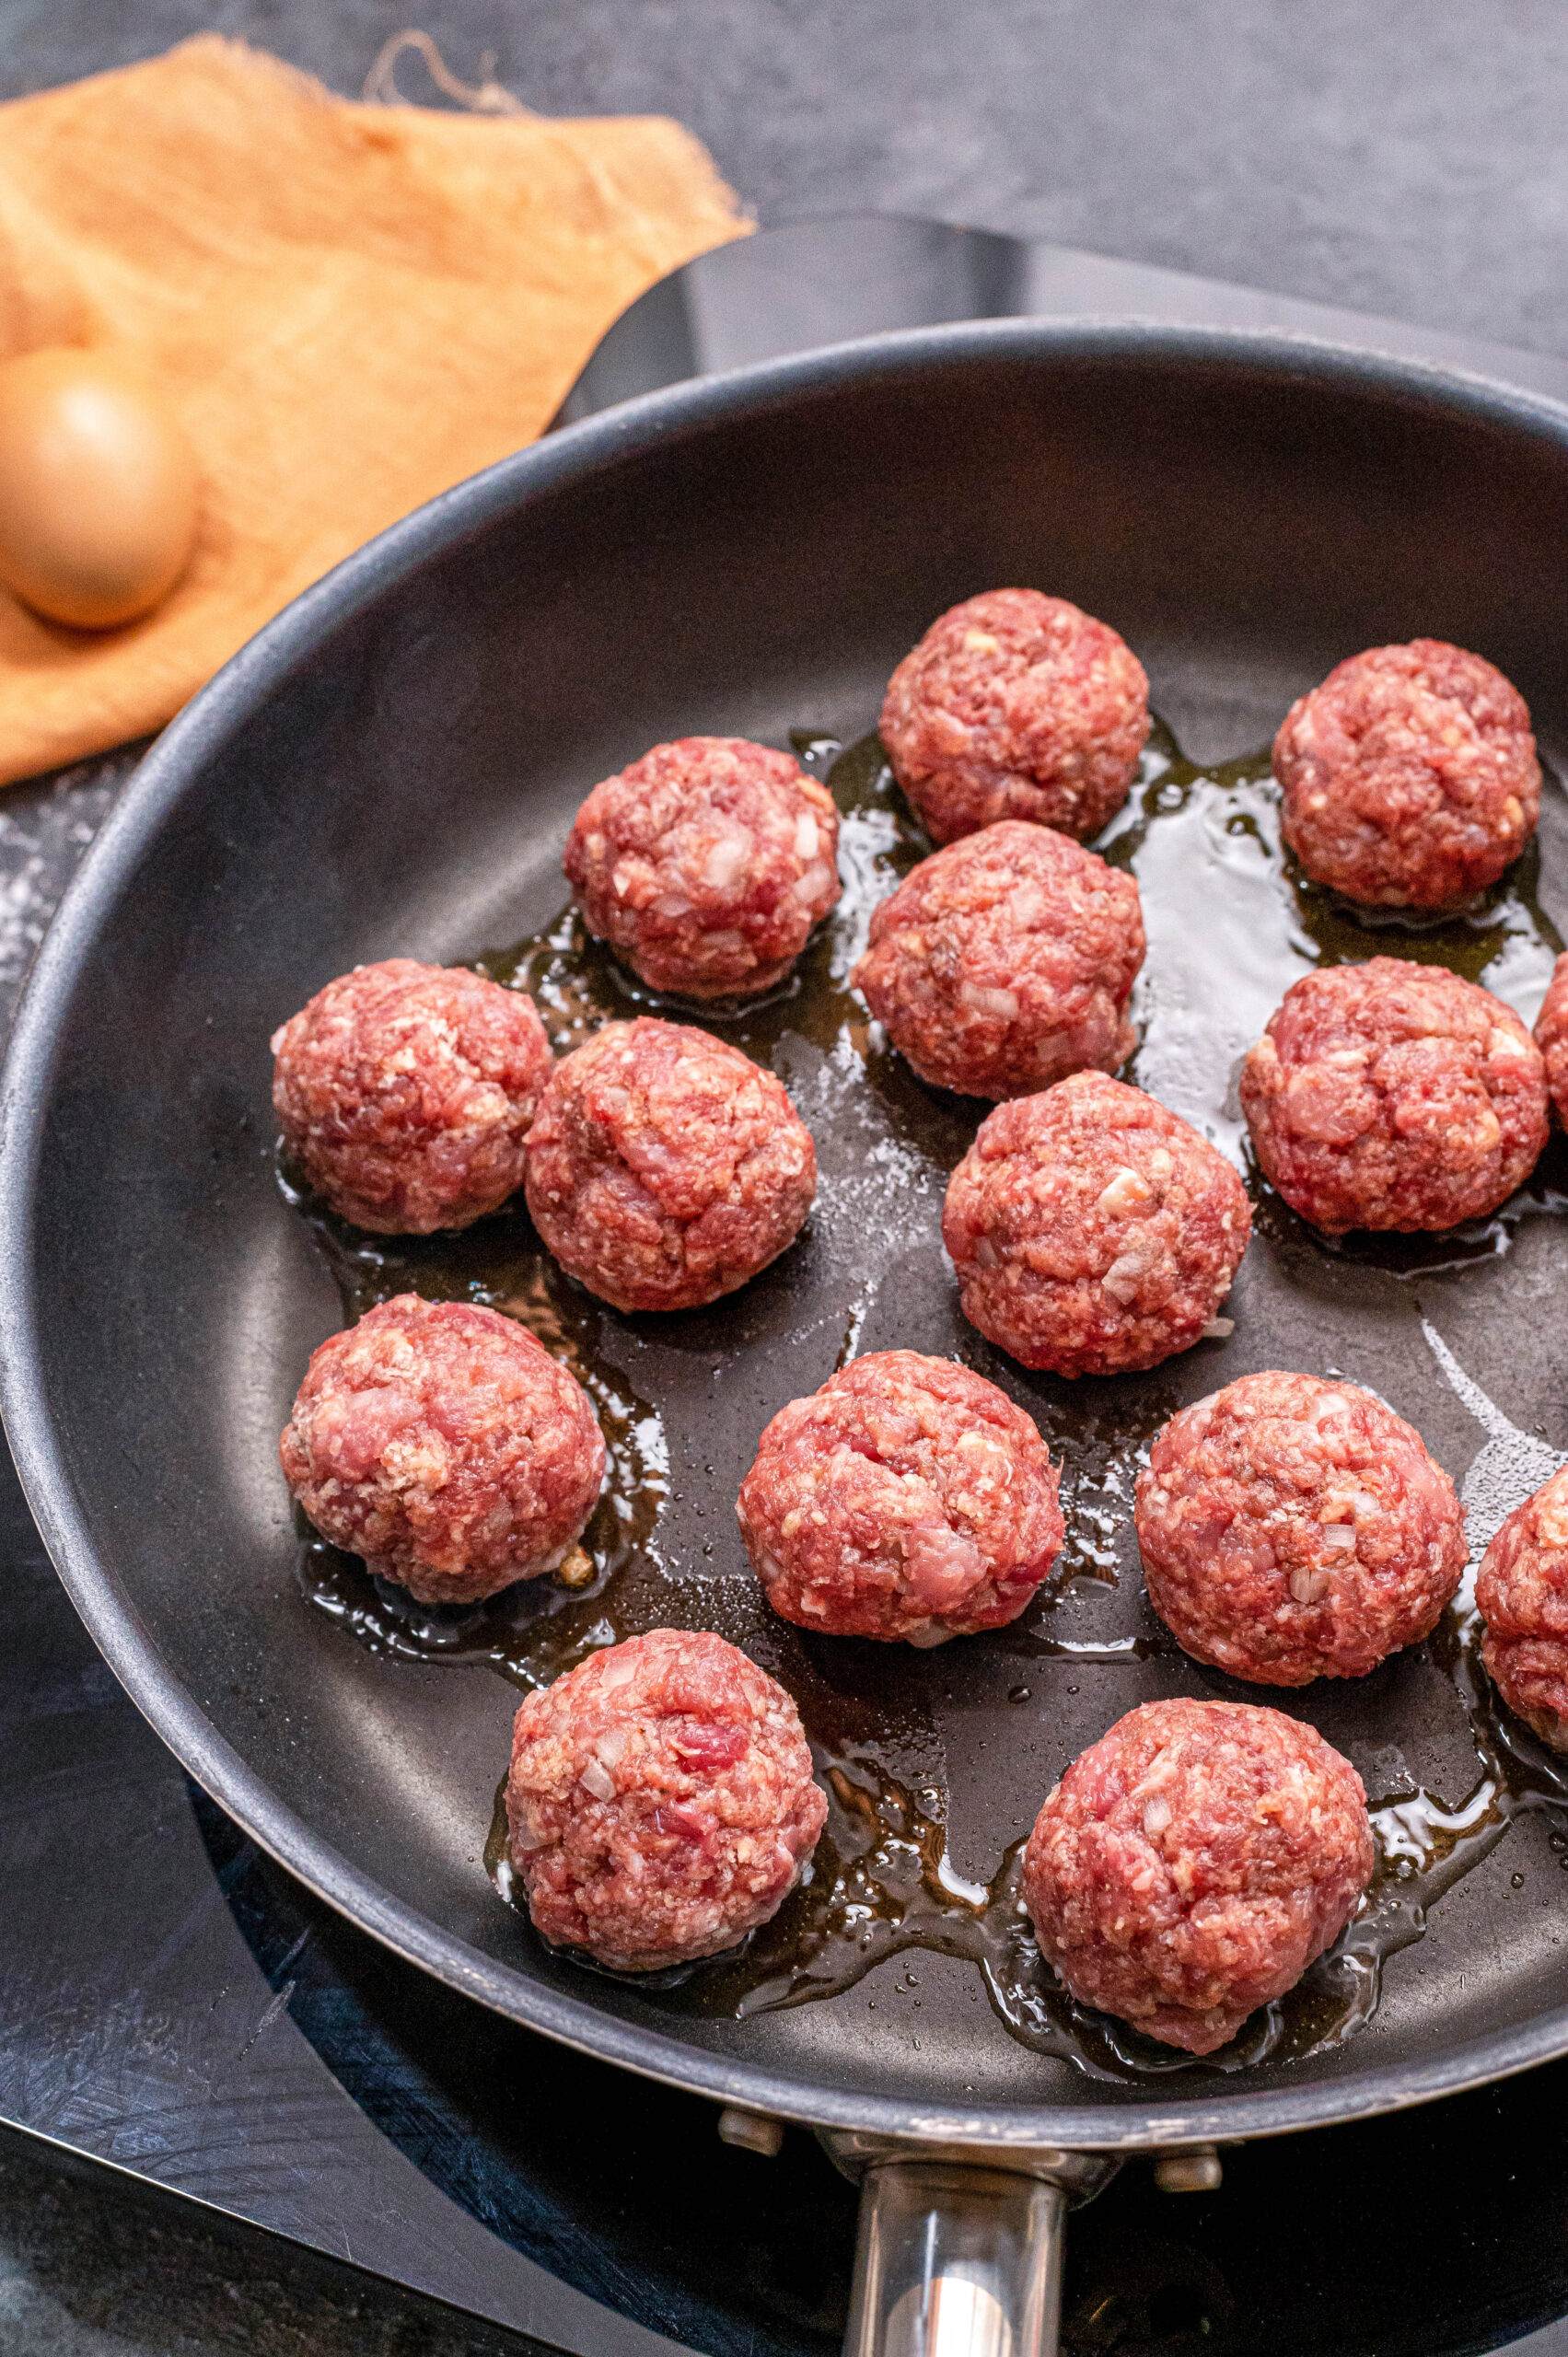 Swedish Meatballs in a Skillet with Olive Oil